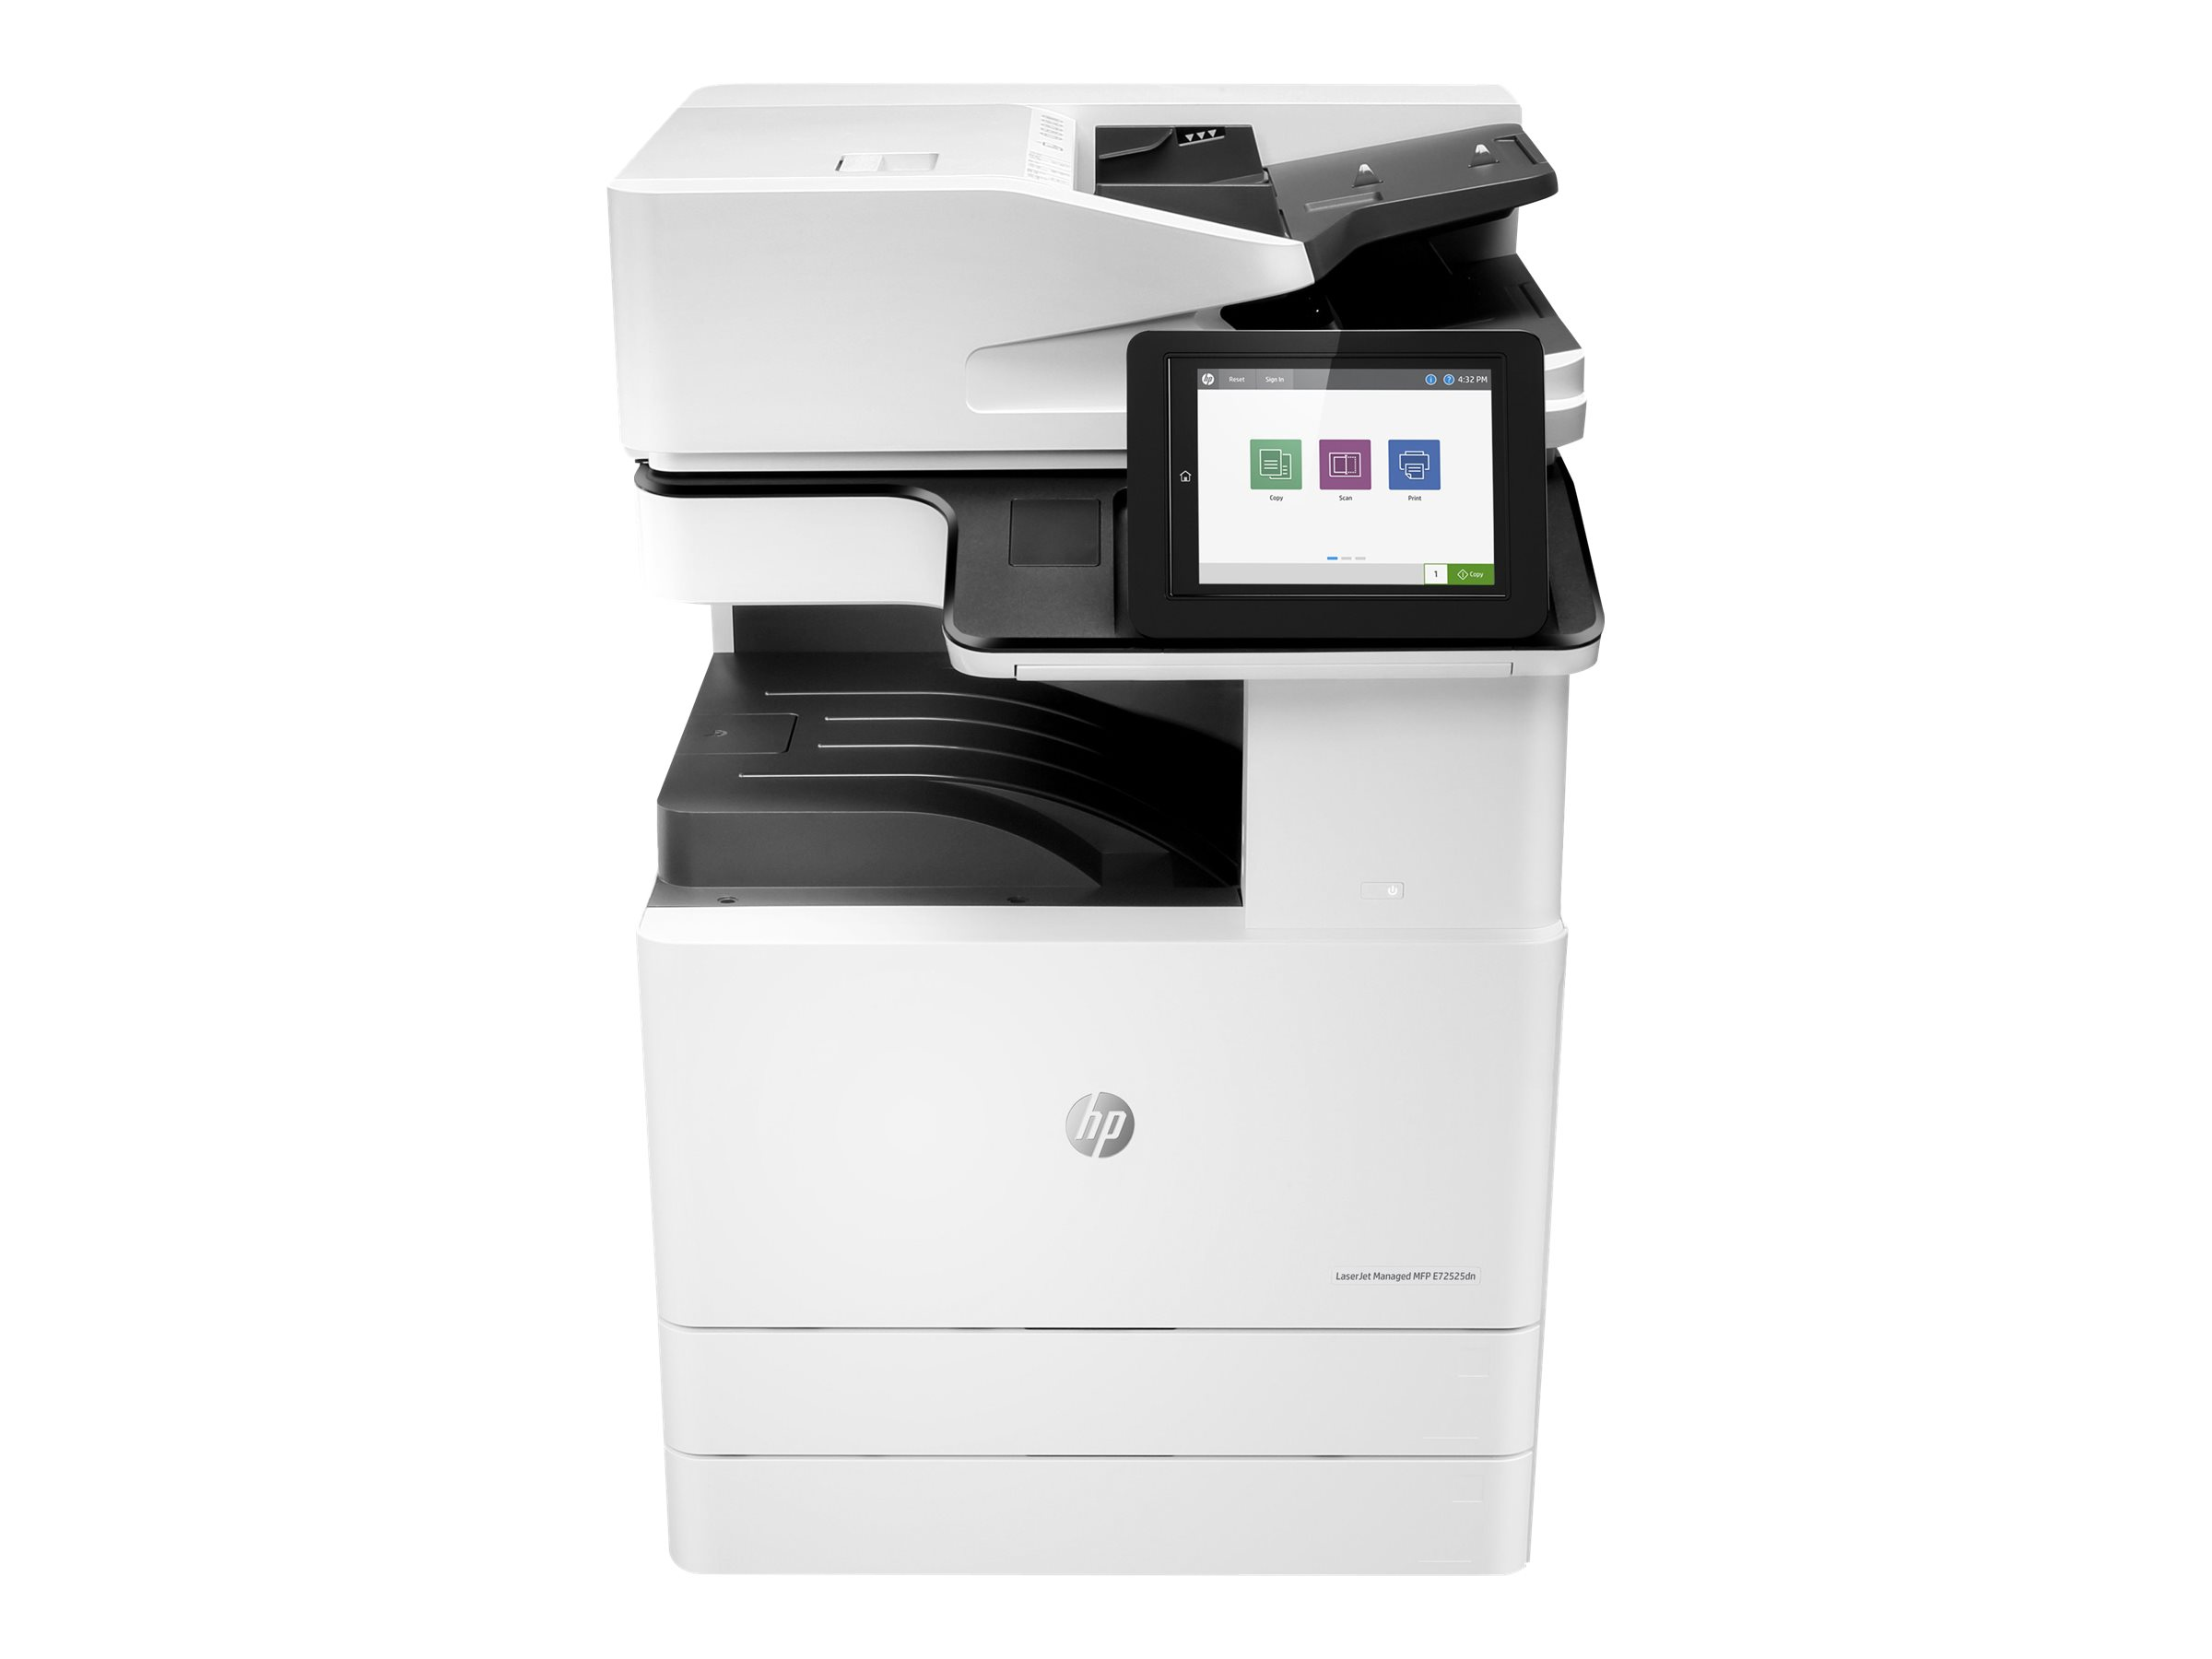 Copieur LaserJet Managed Flow MFP HP E82560z - vitesse 60ppm vue avant